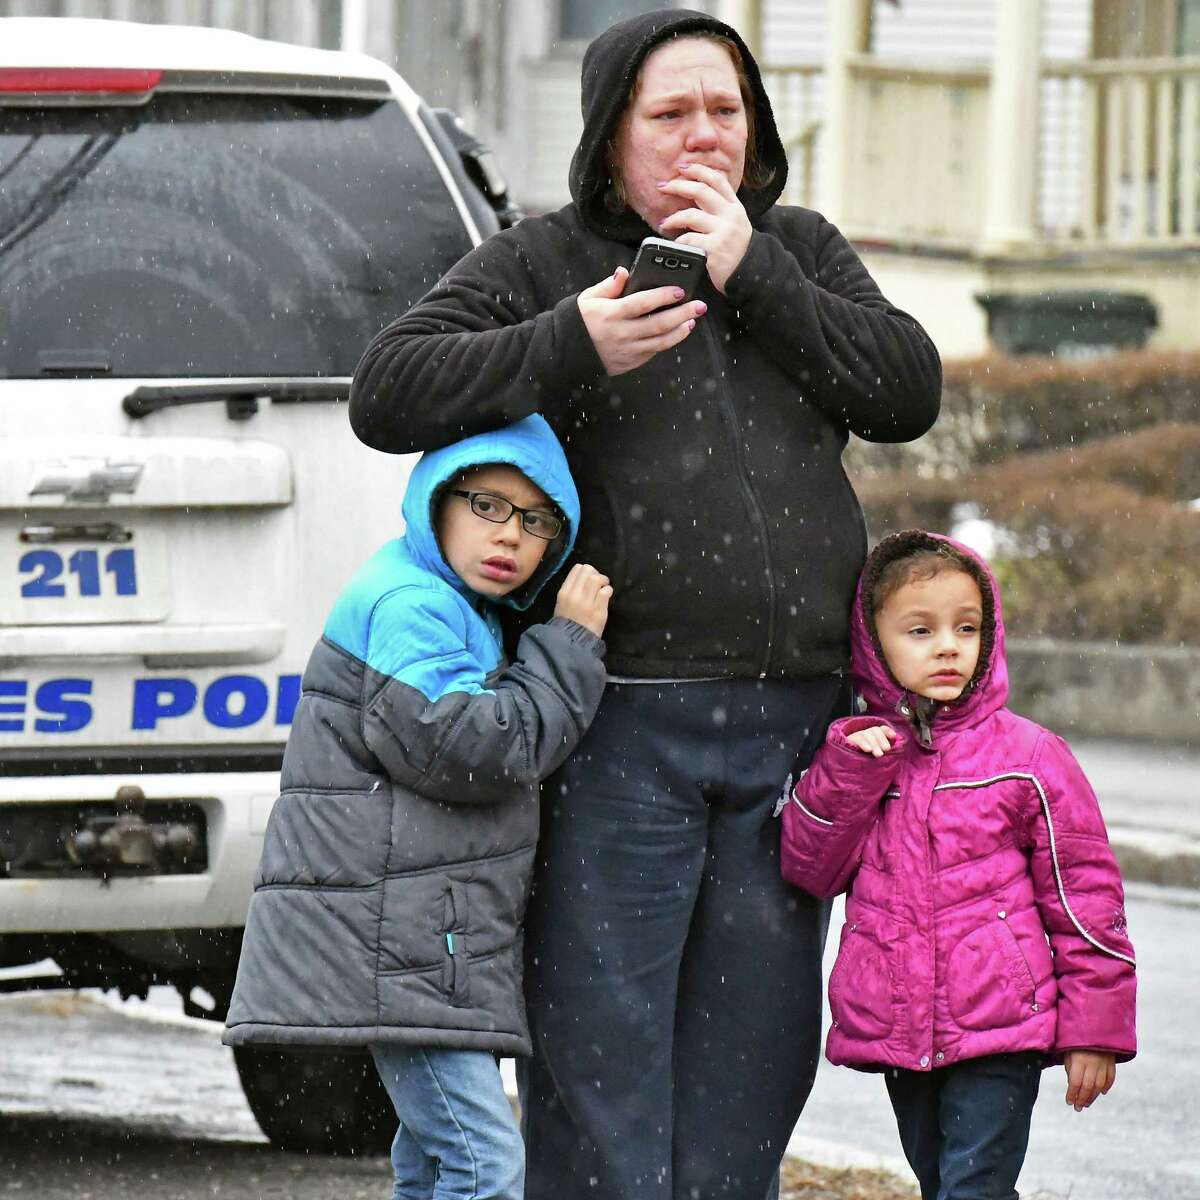 Former neighbor Amanda Jennings of Cohoes, watches with her children Donovan Carrington, 8, left, and Aliyah Carrington, 5 as firefighters battle a house fire at 292 Saratoga Street Tuesday March 28, 2017 in Cohoes, NY. (John Carl D'Annibale / Times Union)